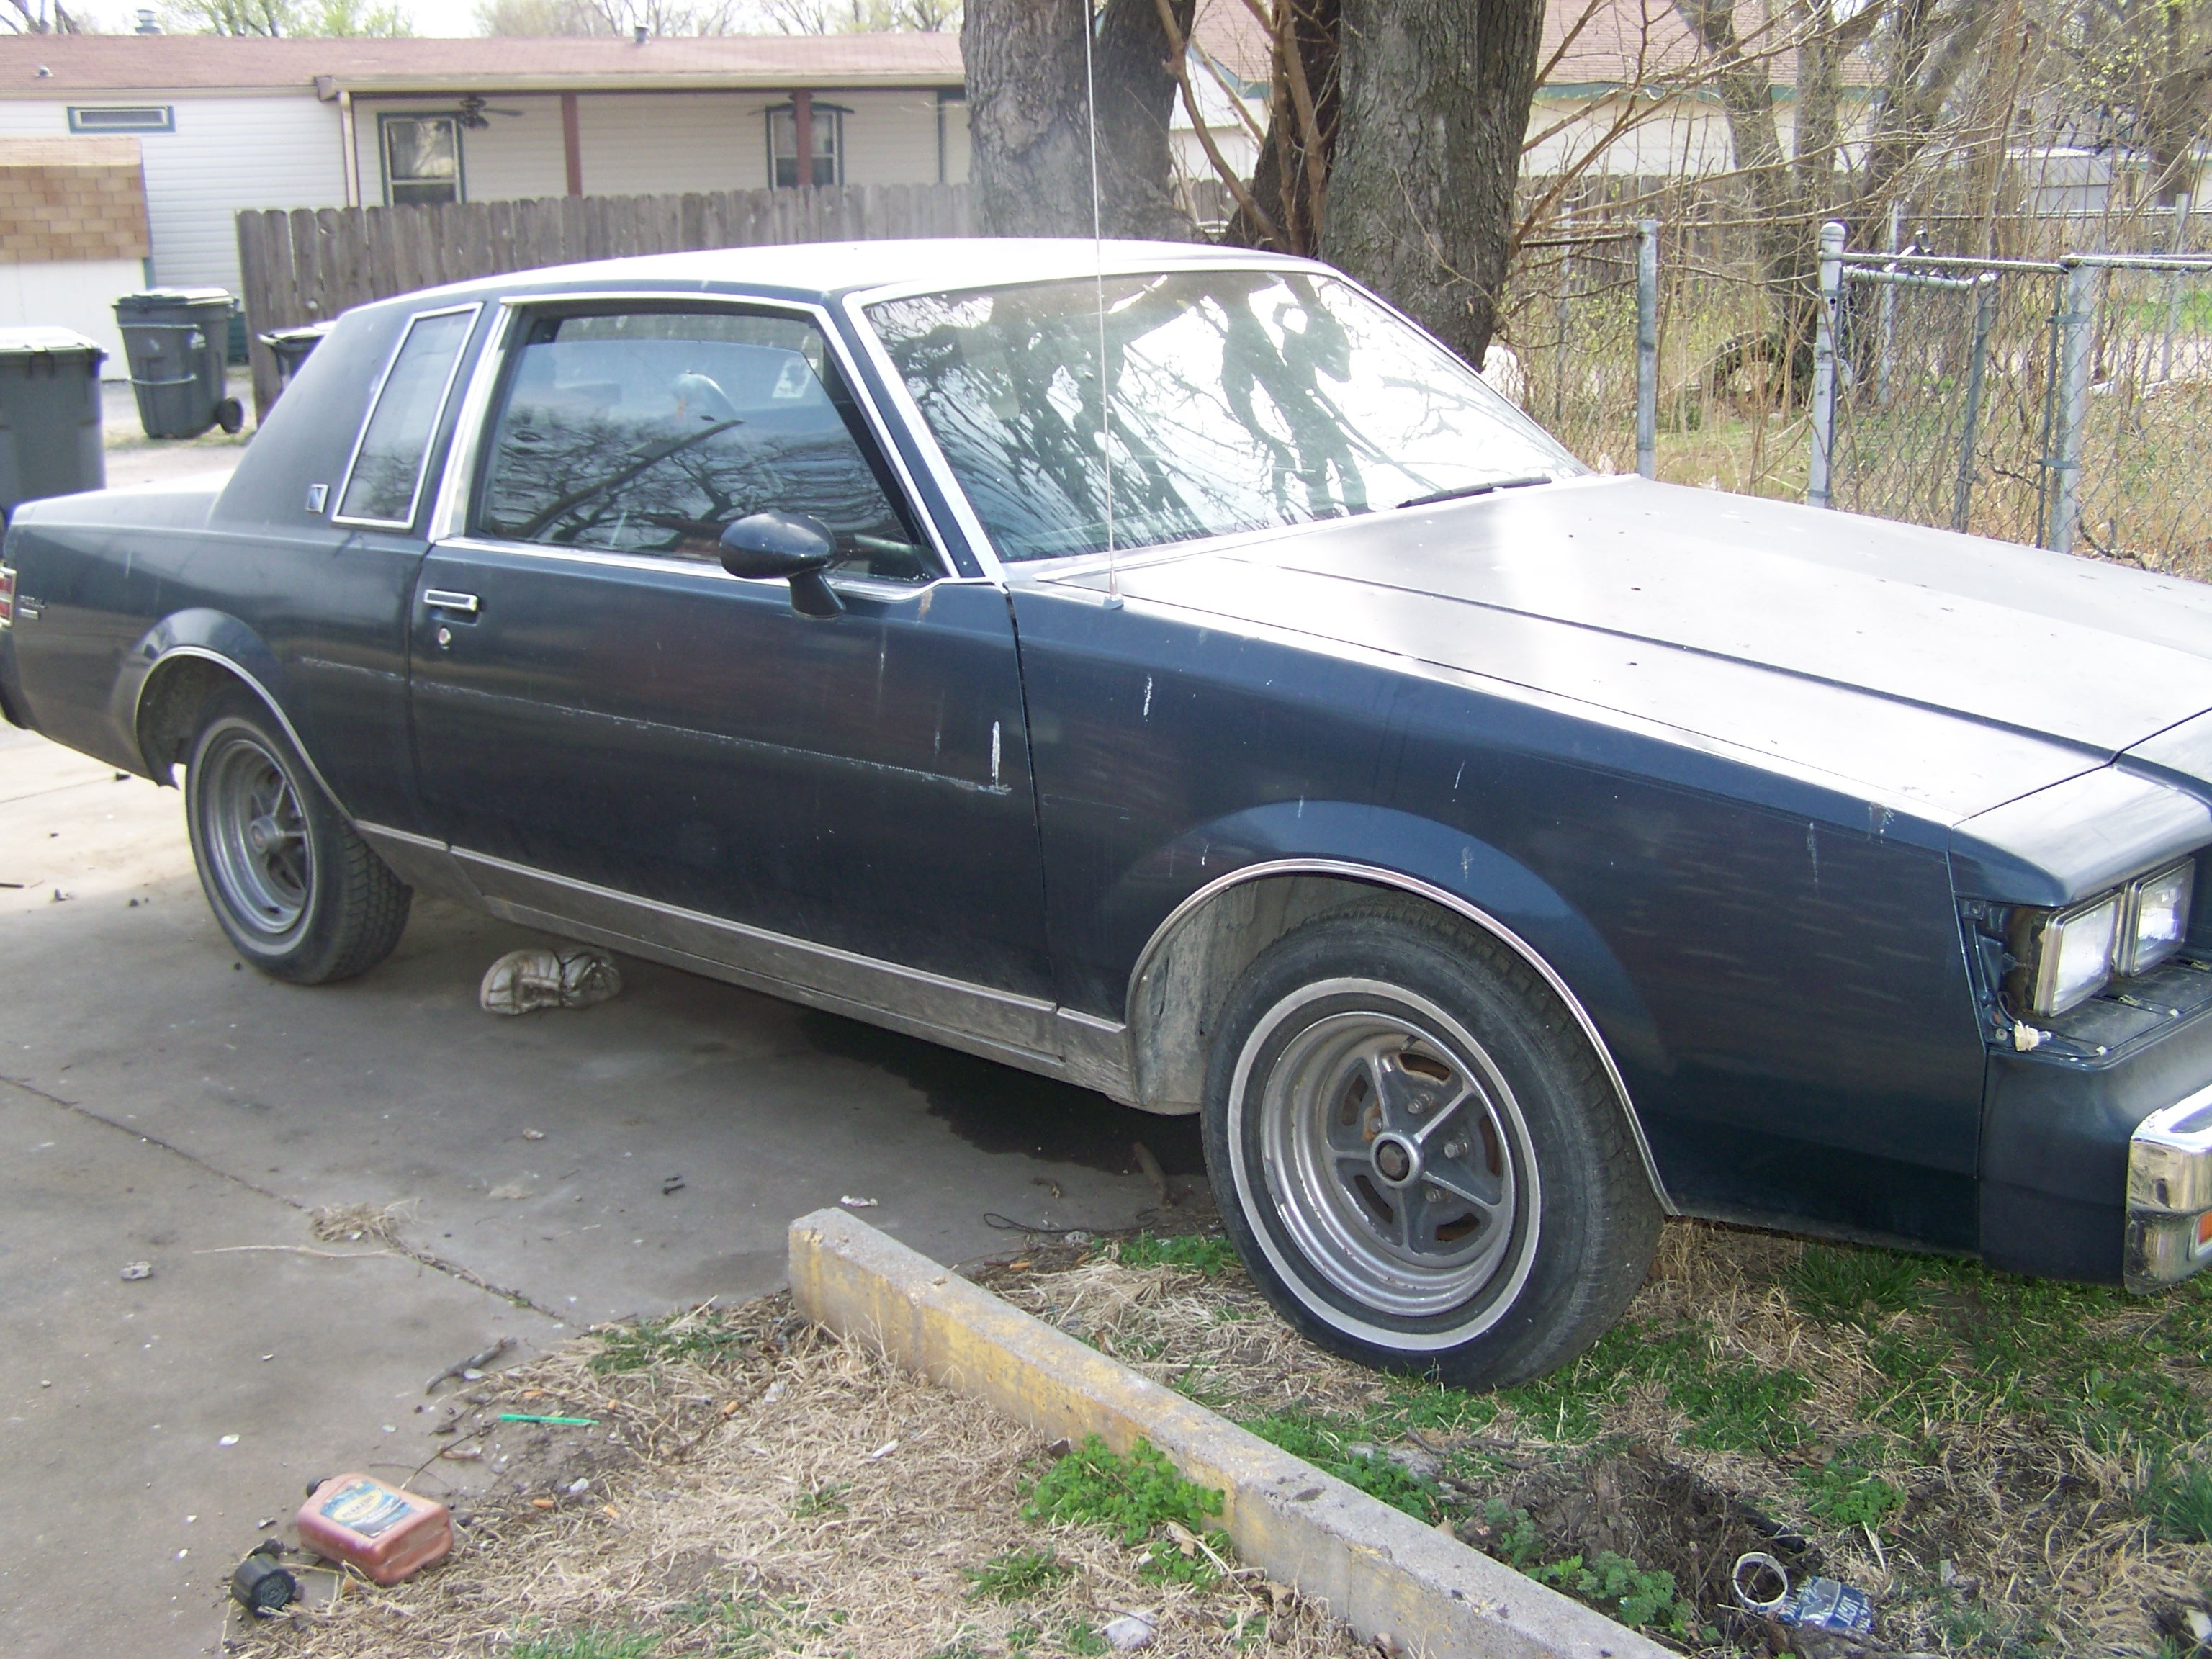 Glasregal Platte Daddysgirl316 1987 Buick Regal Specs Photos Modification Info At